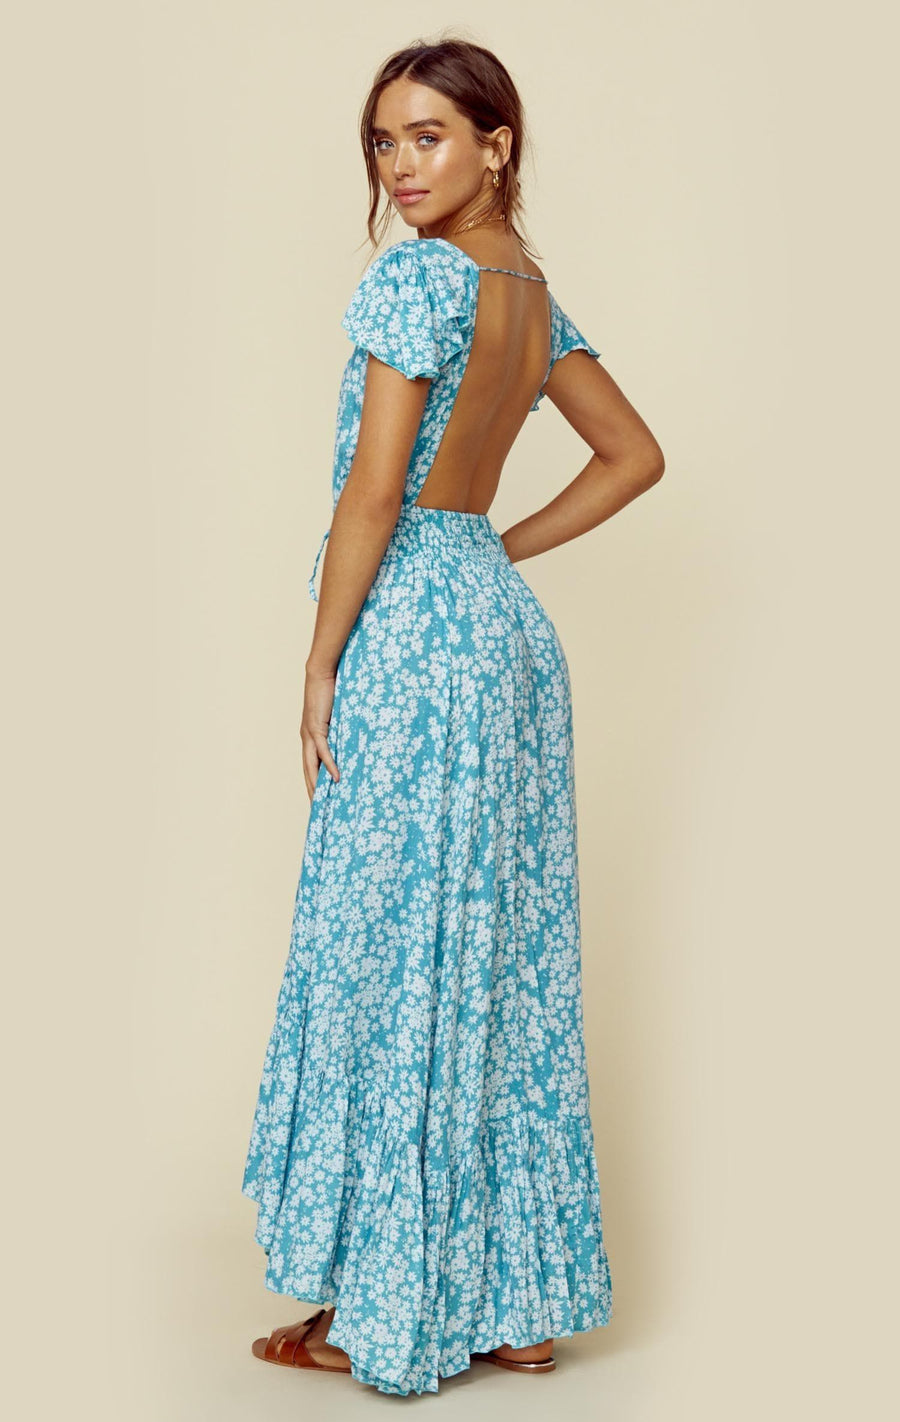 4016f1f641 NEW MOON MAXI. SCATTERED DAISY TOSCA; SCATTERED DAISY TOSCA; SCATTERED DAISY  TOSCA ...